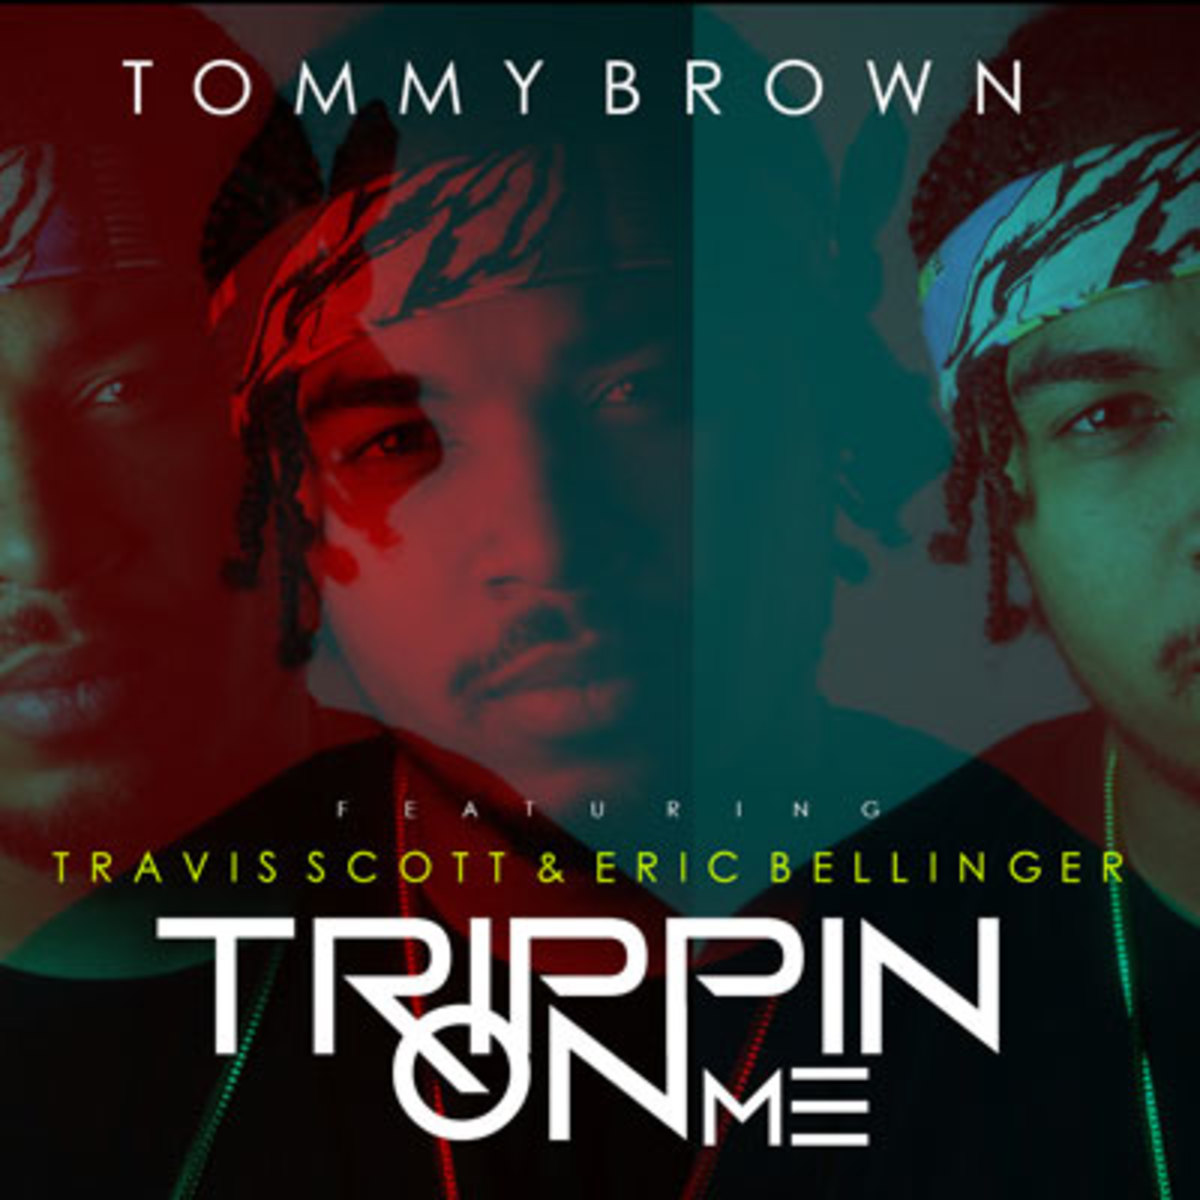 tommy-brown-trippin-on-me.jpg